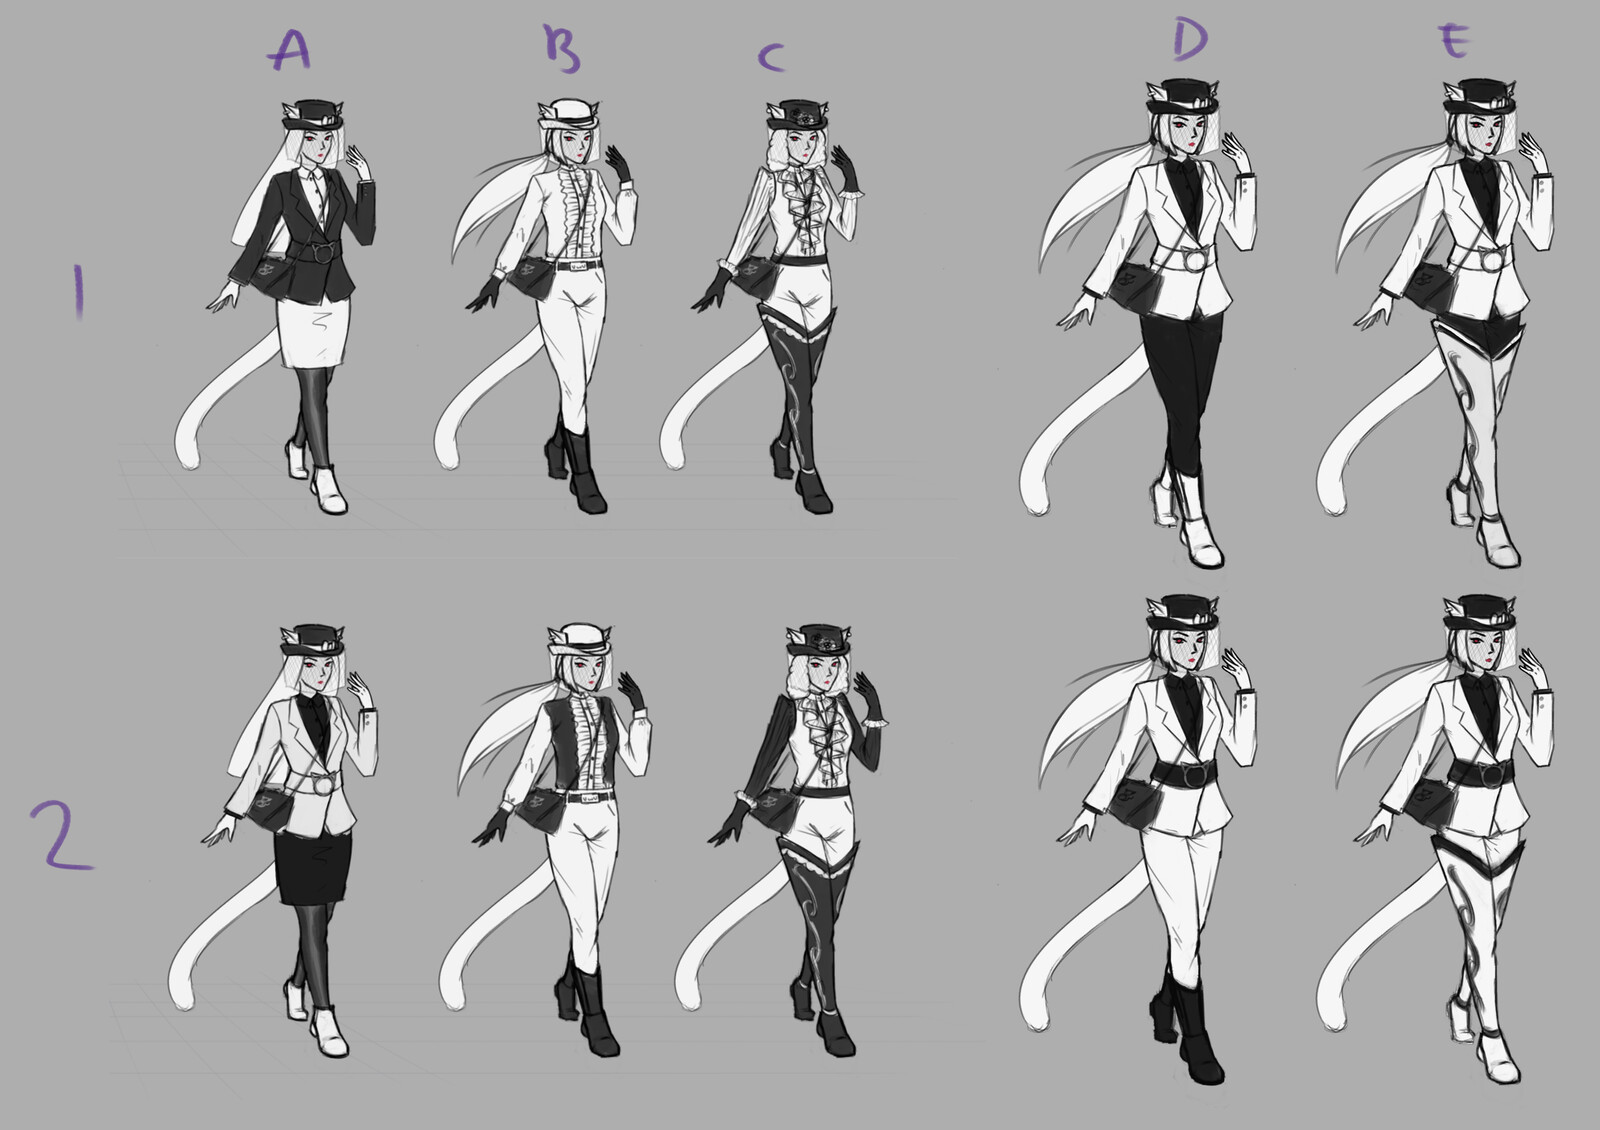 Third pass - outfit variations and values